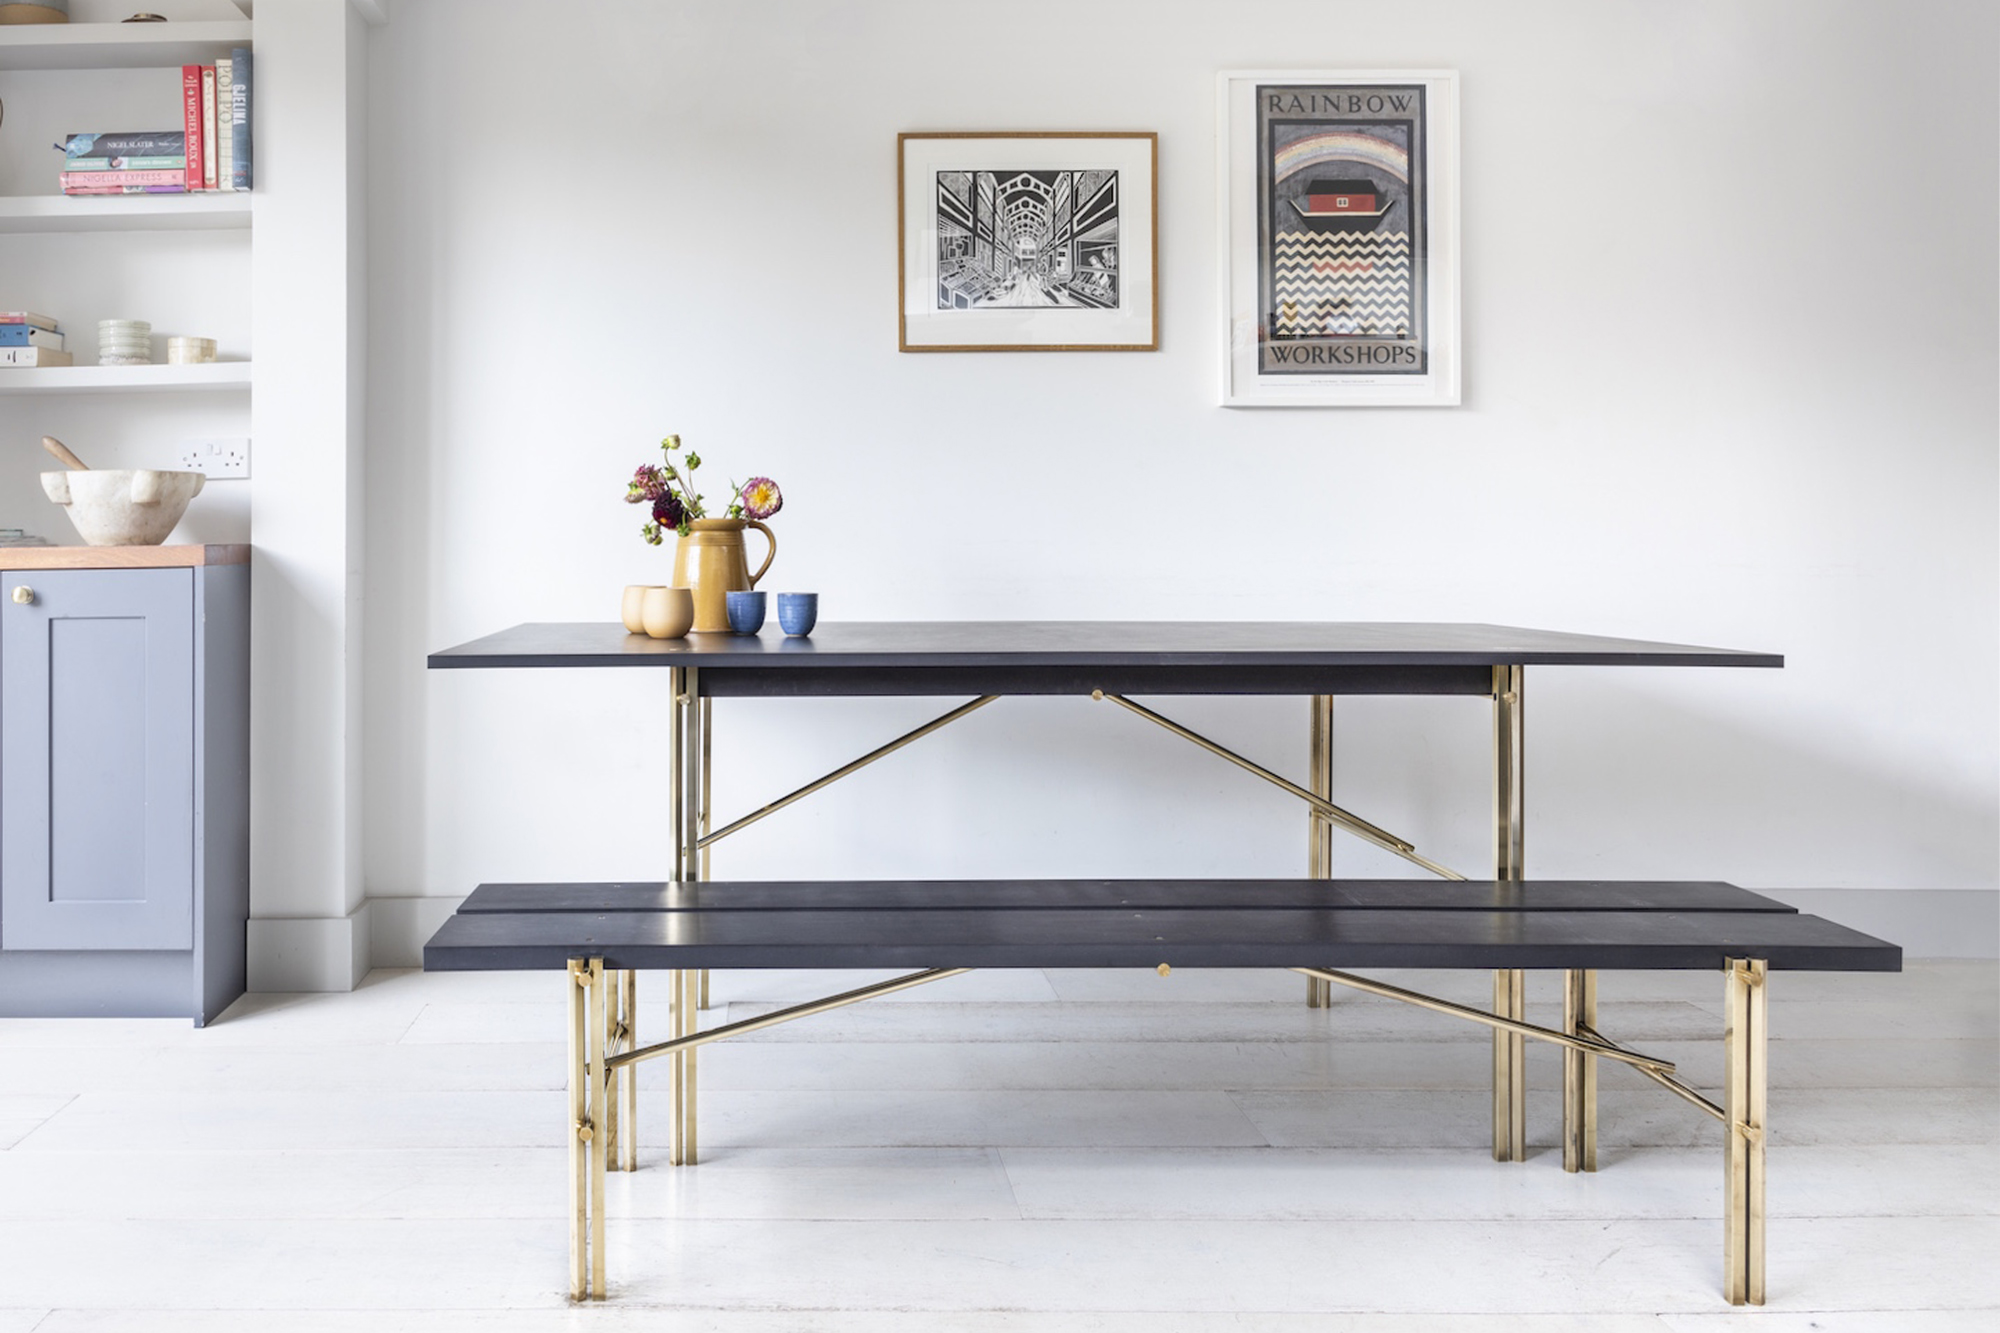 Tremendous Square Peg Table And Bench Studio In Place Gamerscity Chair Design For Home Gamerscityorg